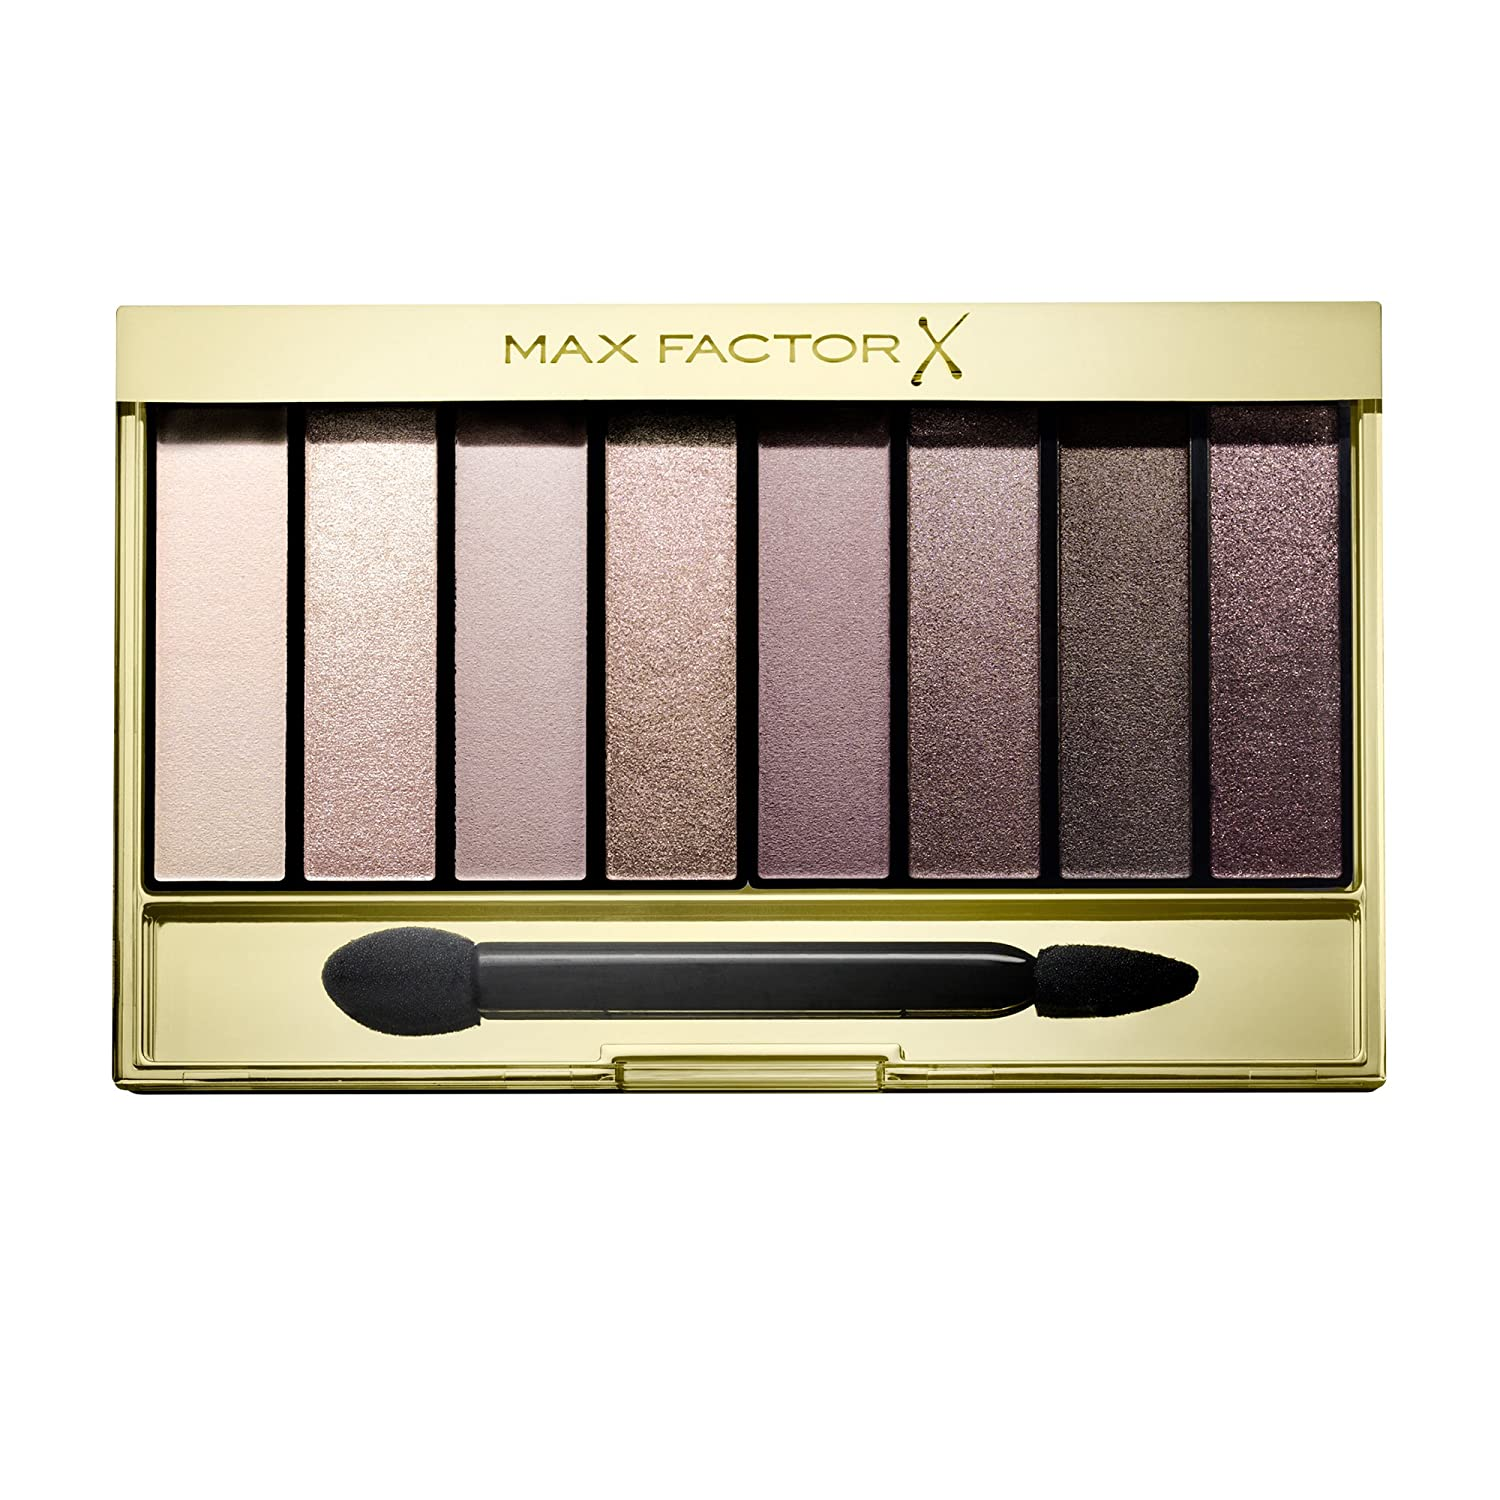 Max Factor Masterpiece Nude Palette Contouring Eye Shadows, 6.5 g, 01 Cappuccino Nudes Coty 81597878